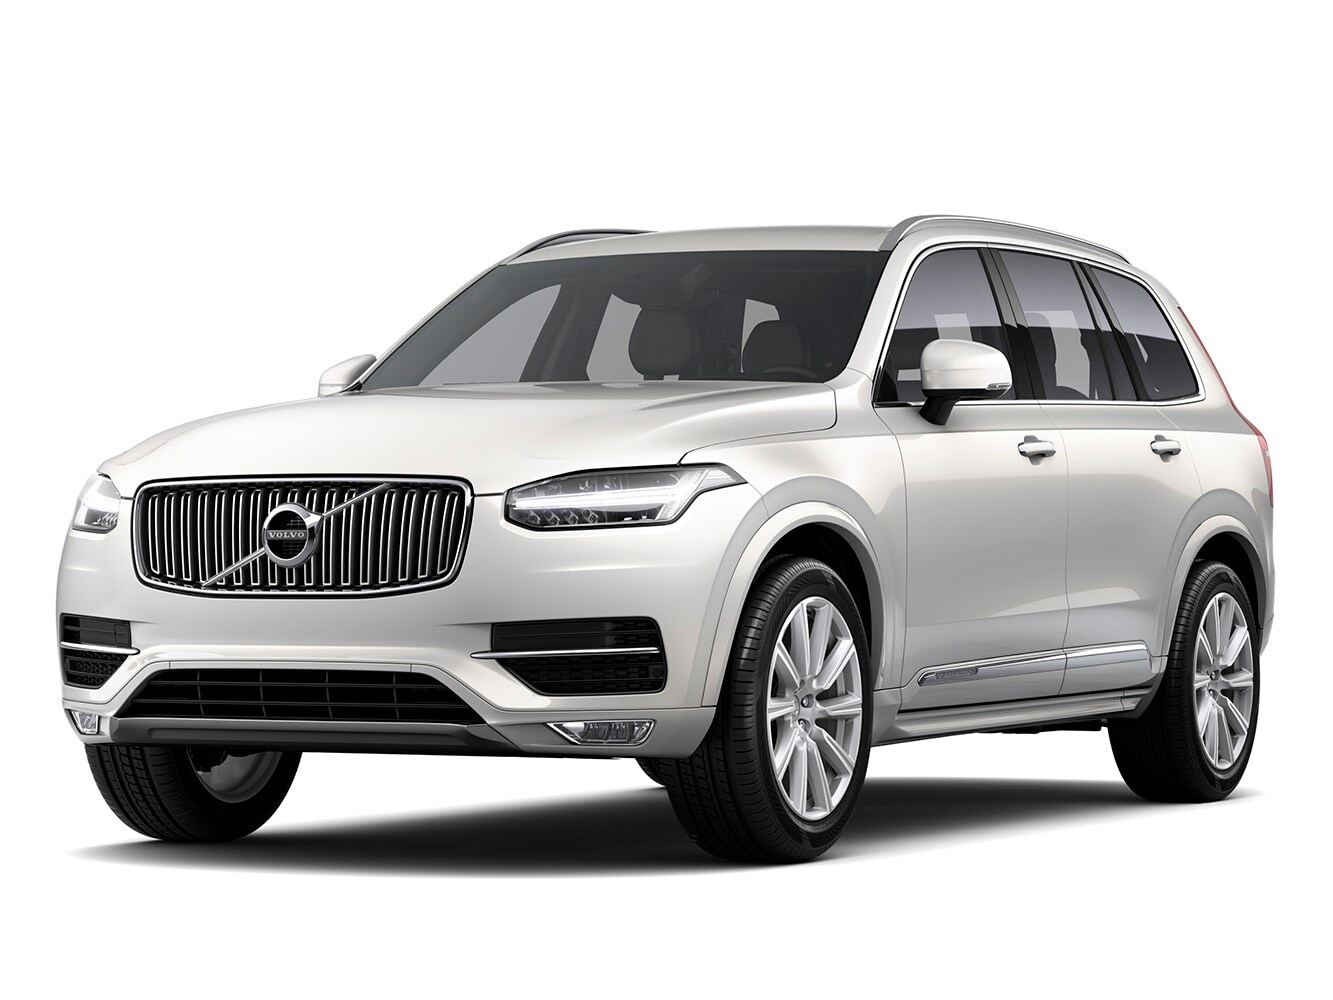 Volvo XC90 Inscription paket dodatne opreme